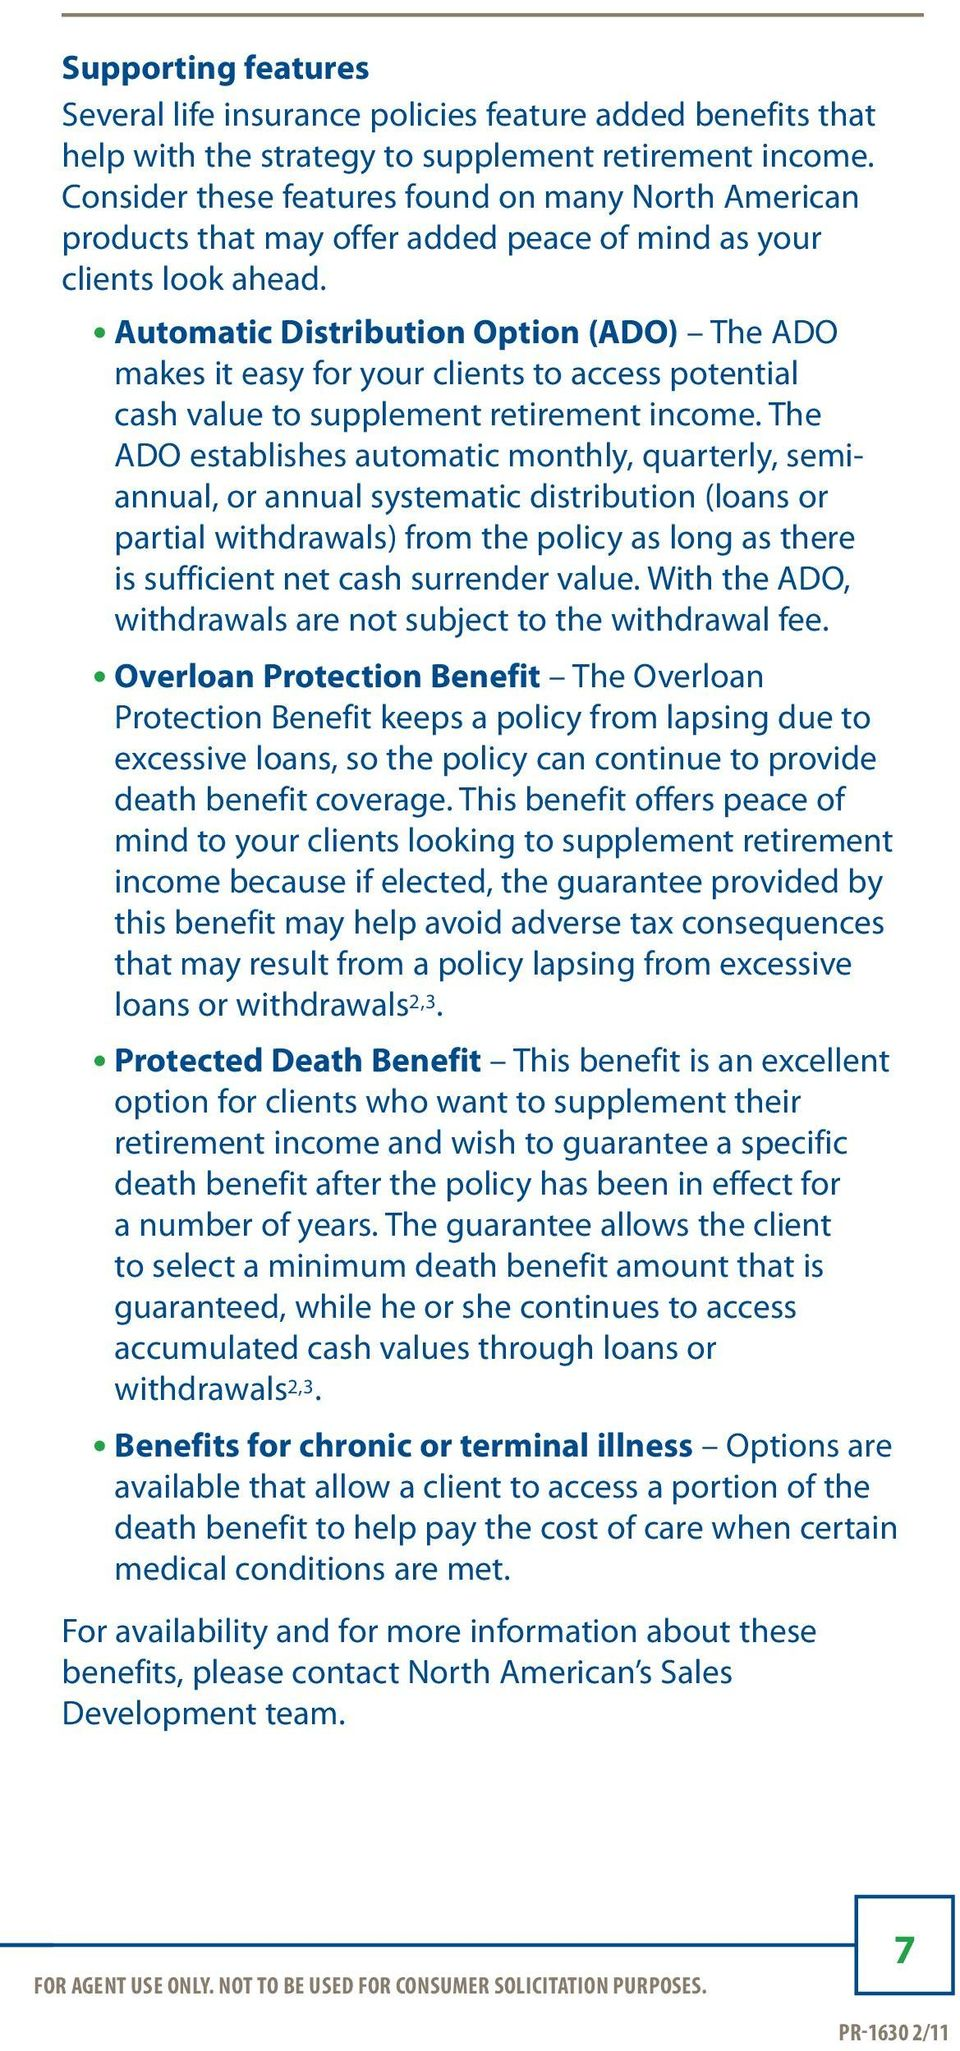 Automatic Distribution Option (ADO) The ADO makes it easy for your clients to access potential cash value to supplement retirement income.